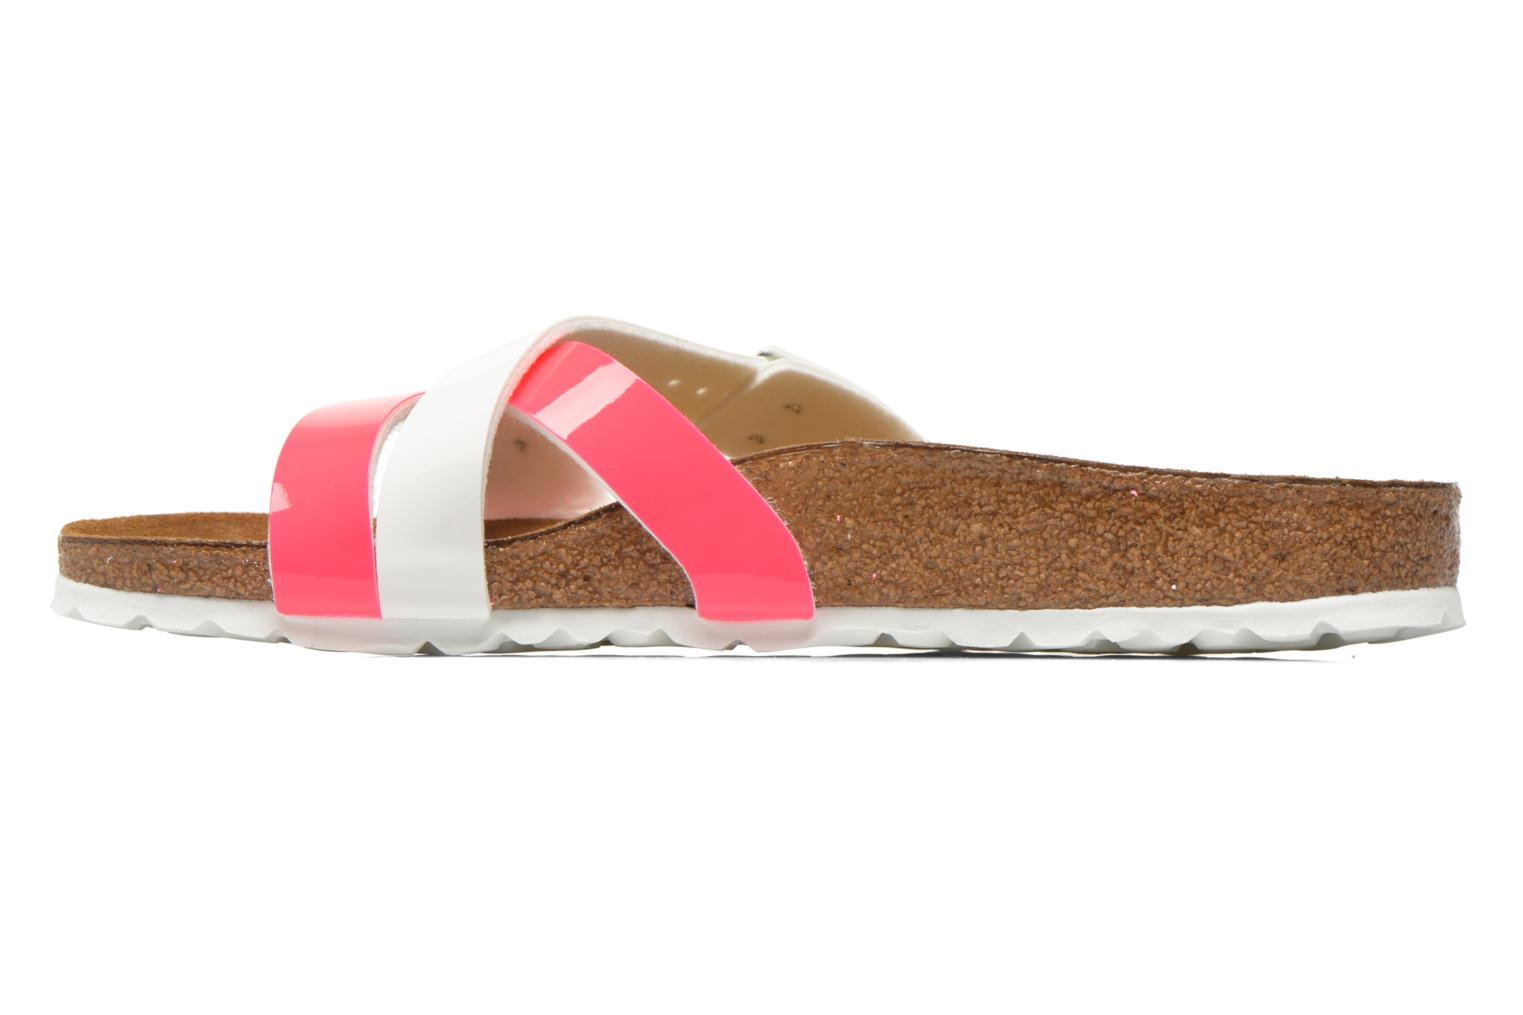 Yao Flor Vernis Neon Pink / White